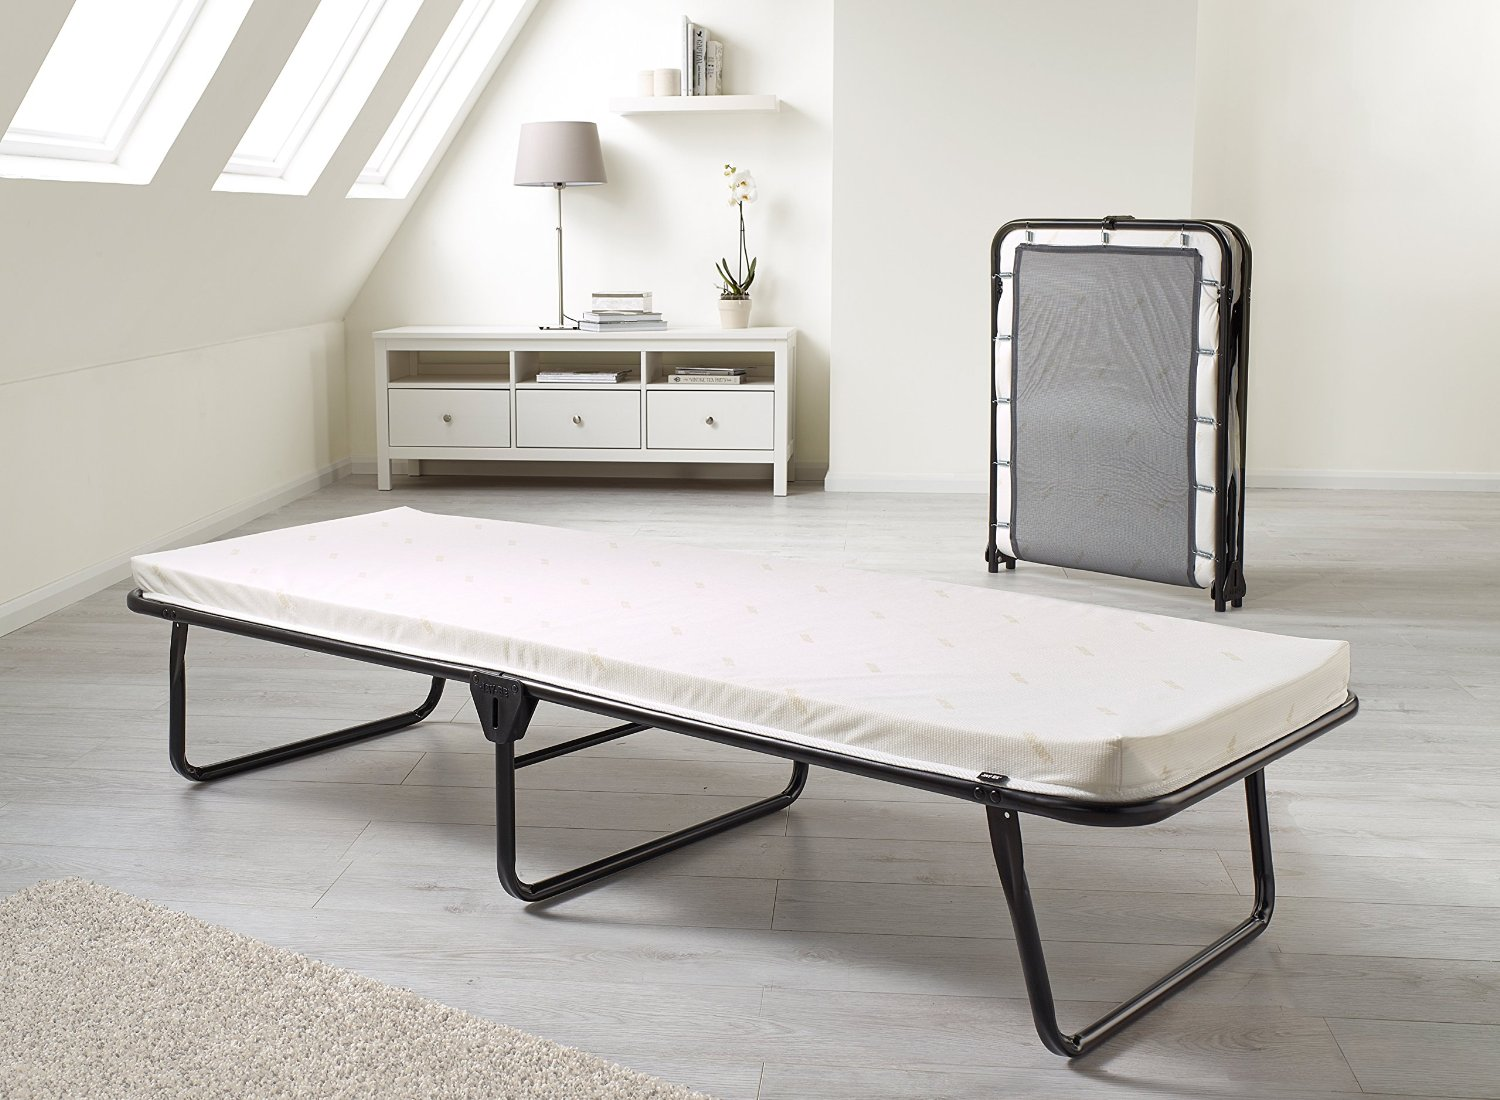 folding beds best folding bed PQHBDWL